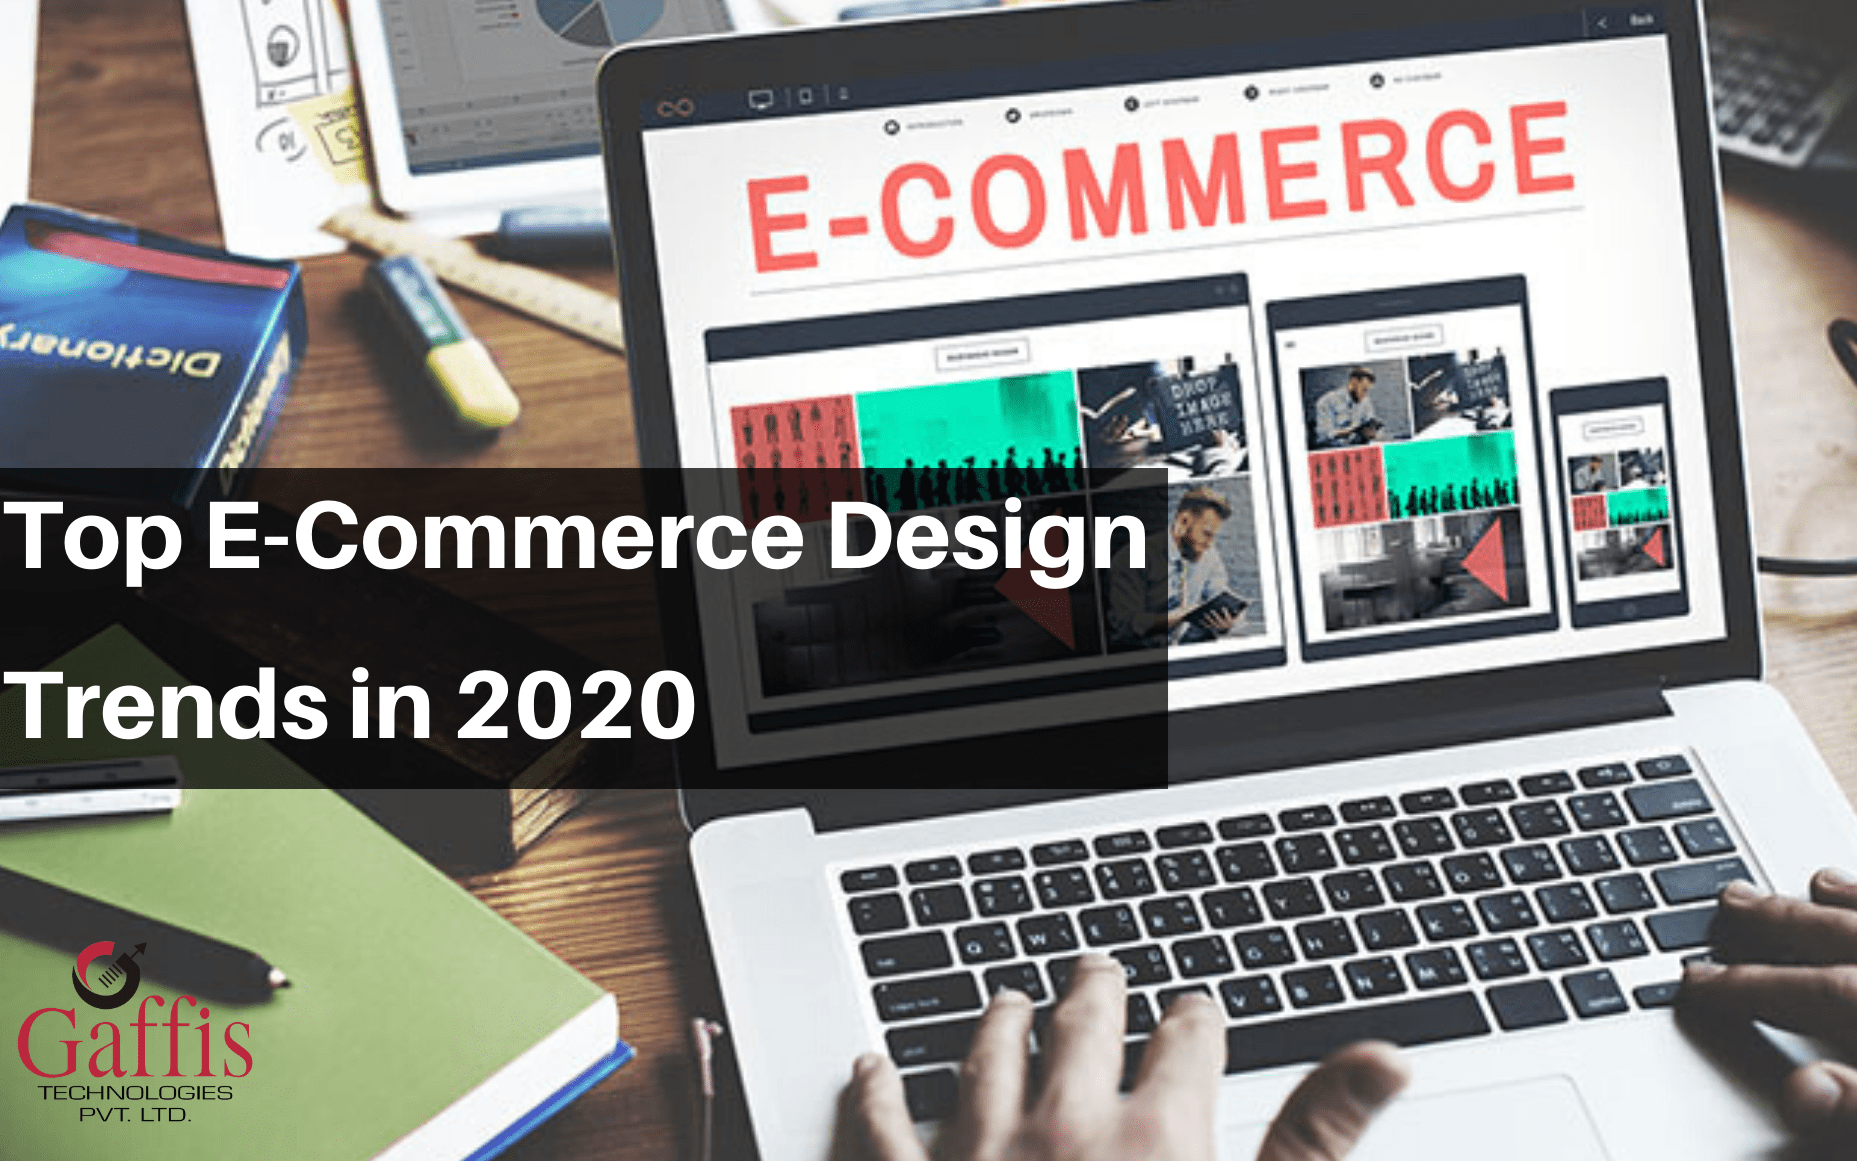 7 Ecommerce Design Trends You Need to Know in 2020